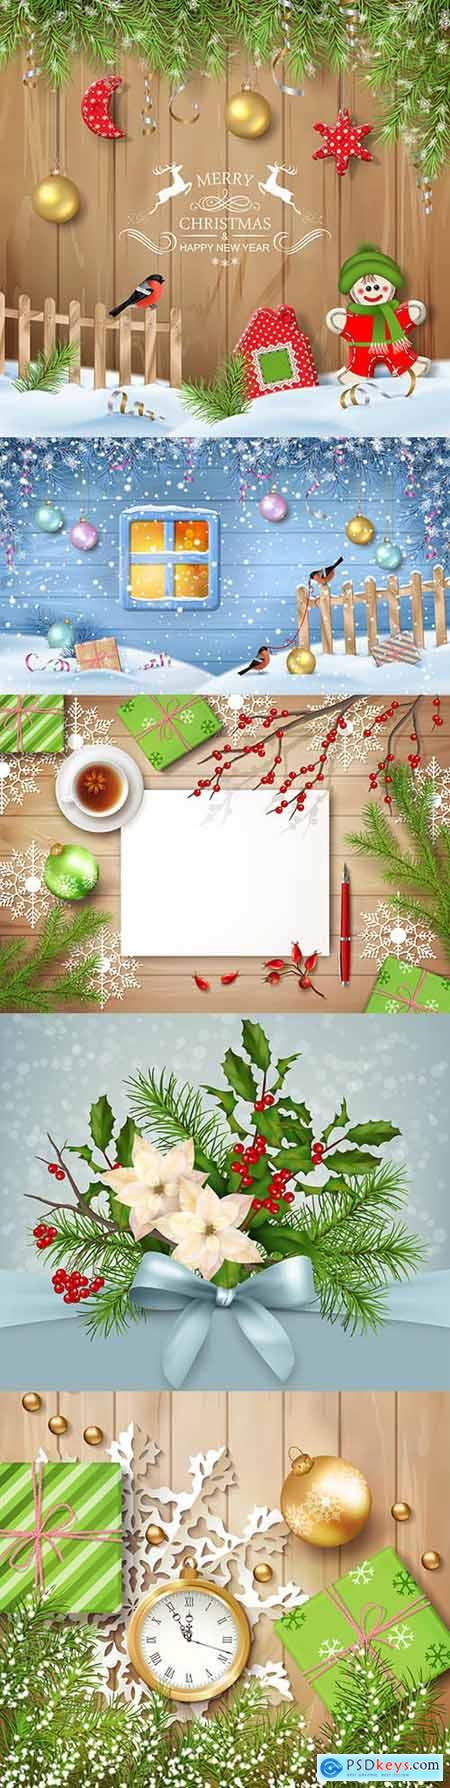 Merry Christmas and New Year 2021 decorative illustrations